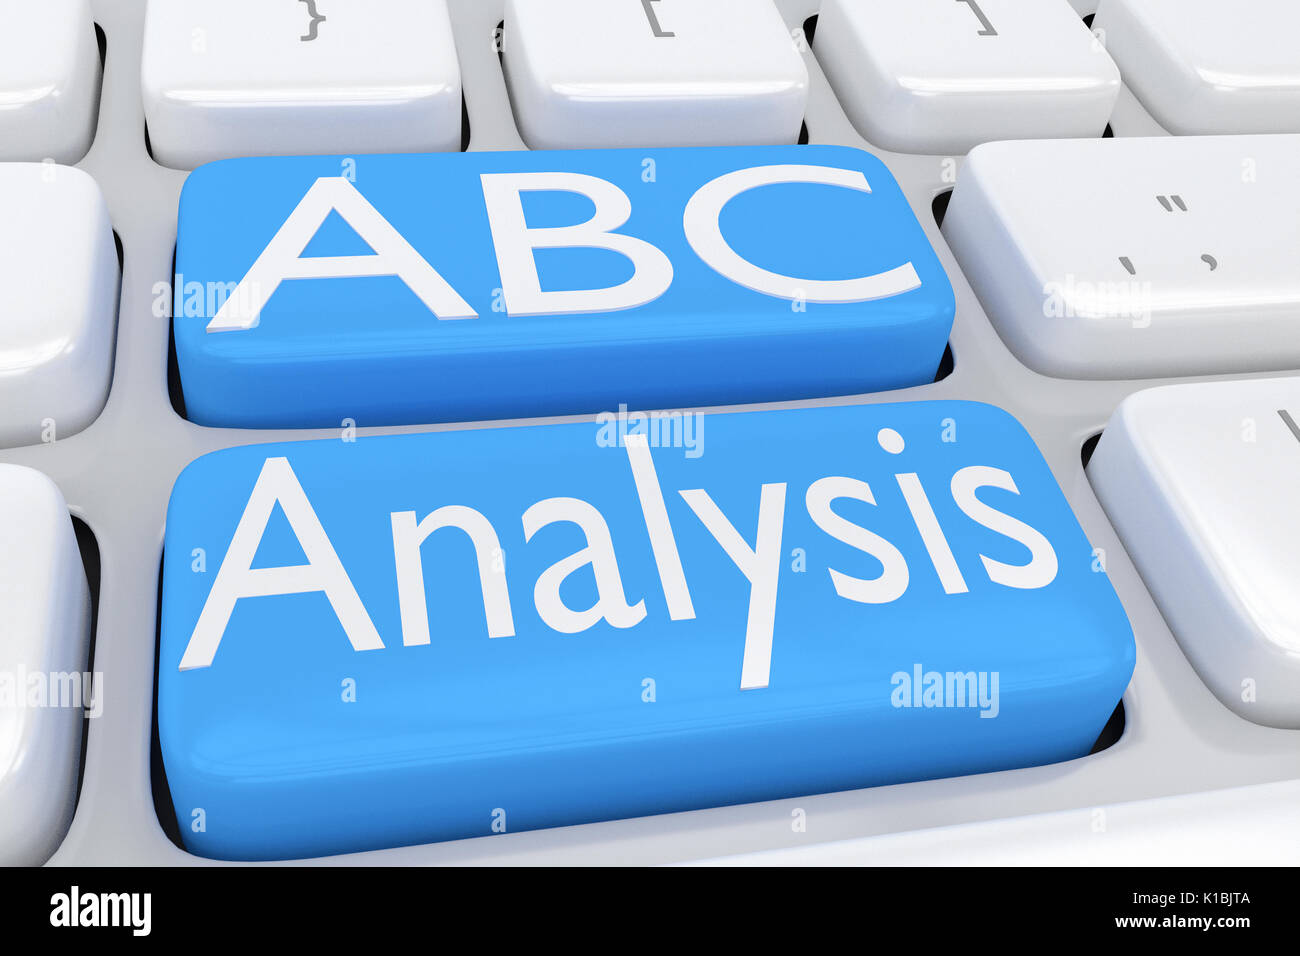 3D illustration of computer keyboard with the script 'ABC Analysis' on two adjacent pale blue buttons - Stock Image